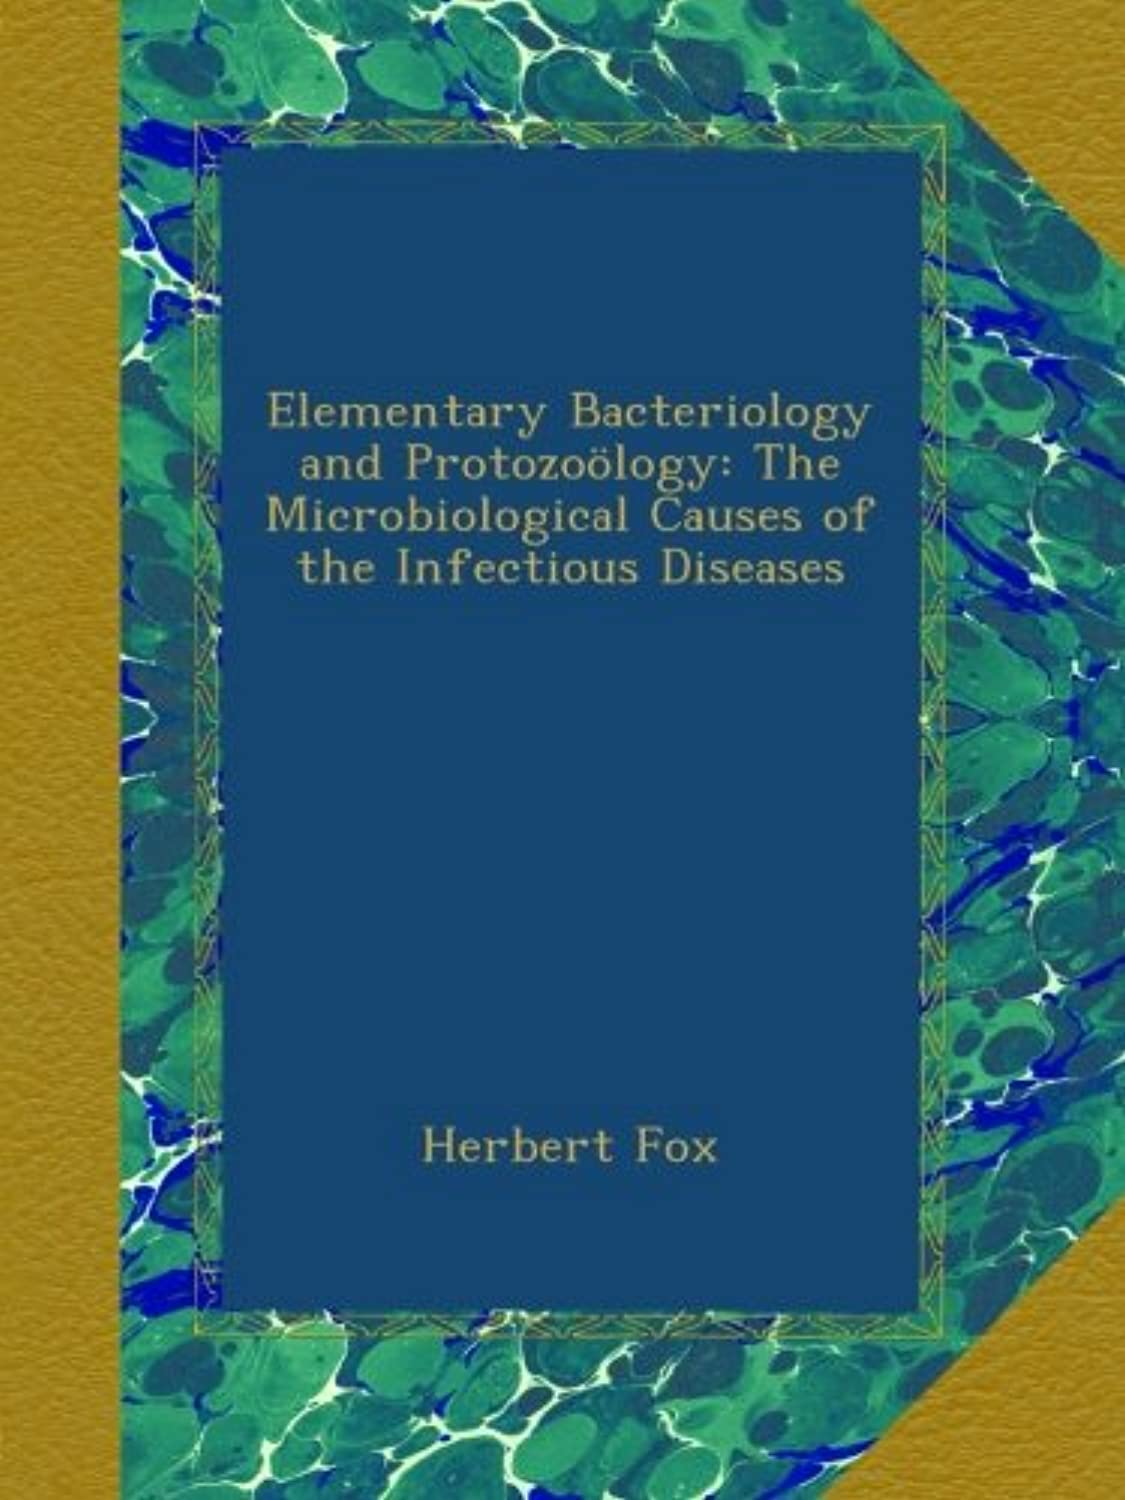 Elementary Bacteriology and Protozooelogy: The Microbiological Causes of the Infectious Diseases